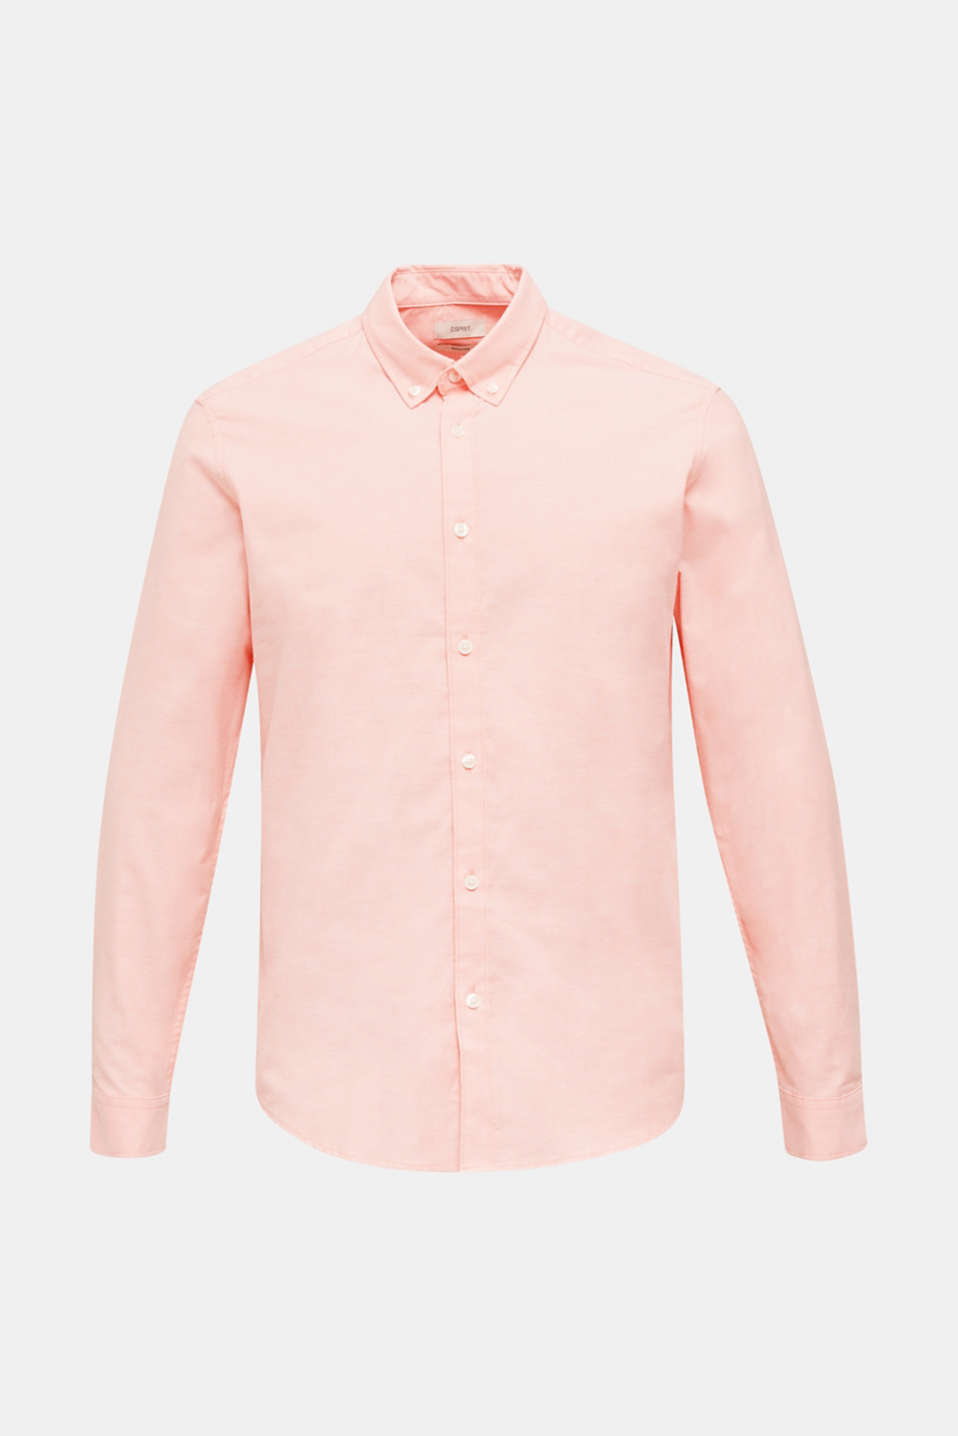 Shirts woven Regular fit, CORAL 5, detail image number 6